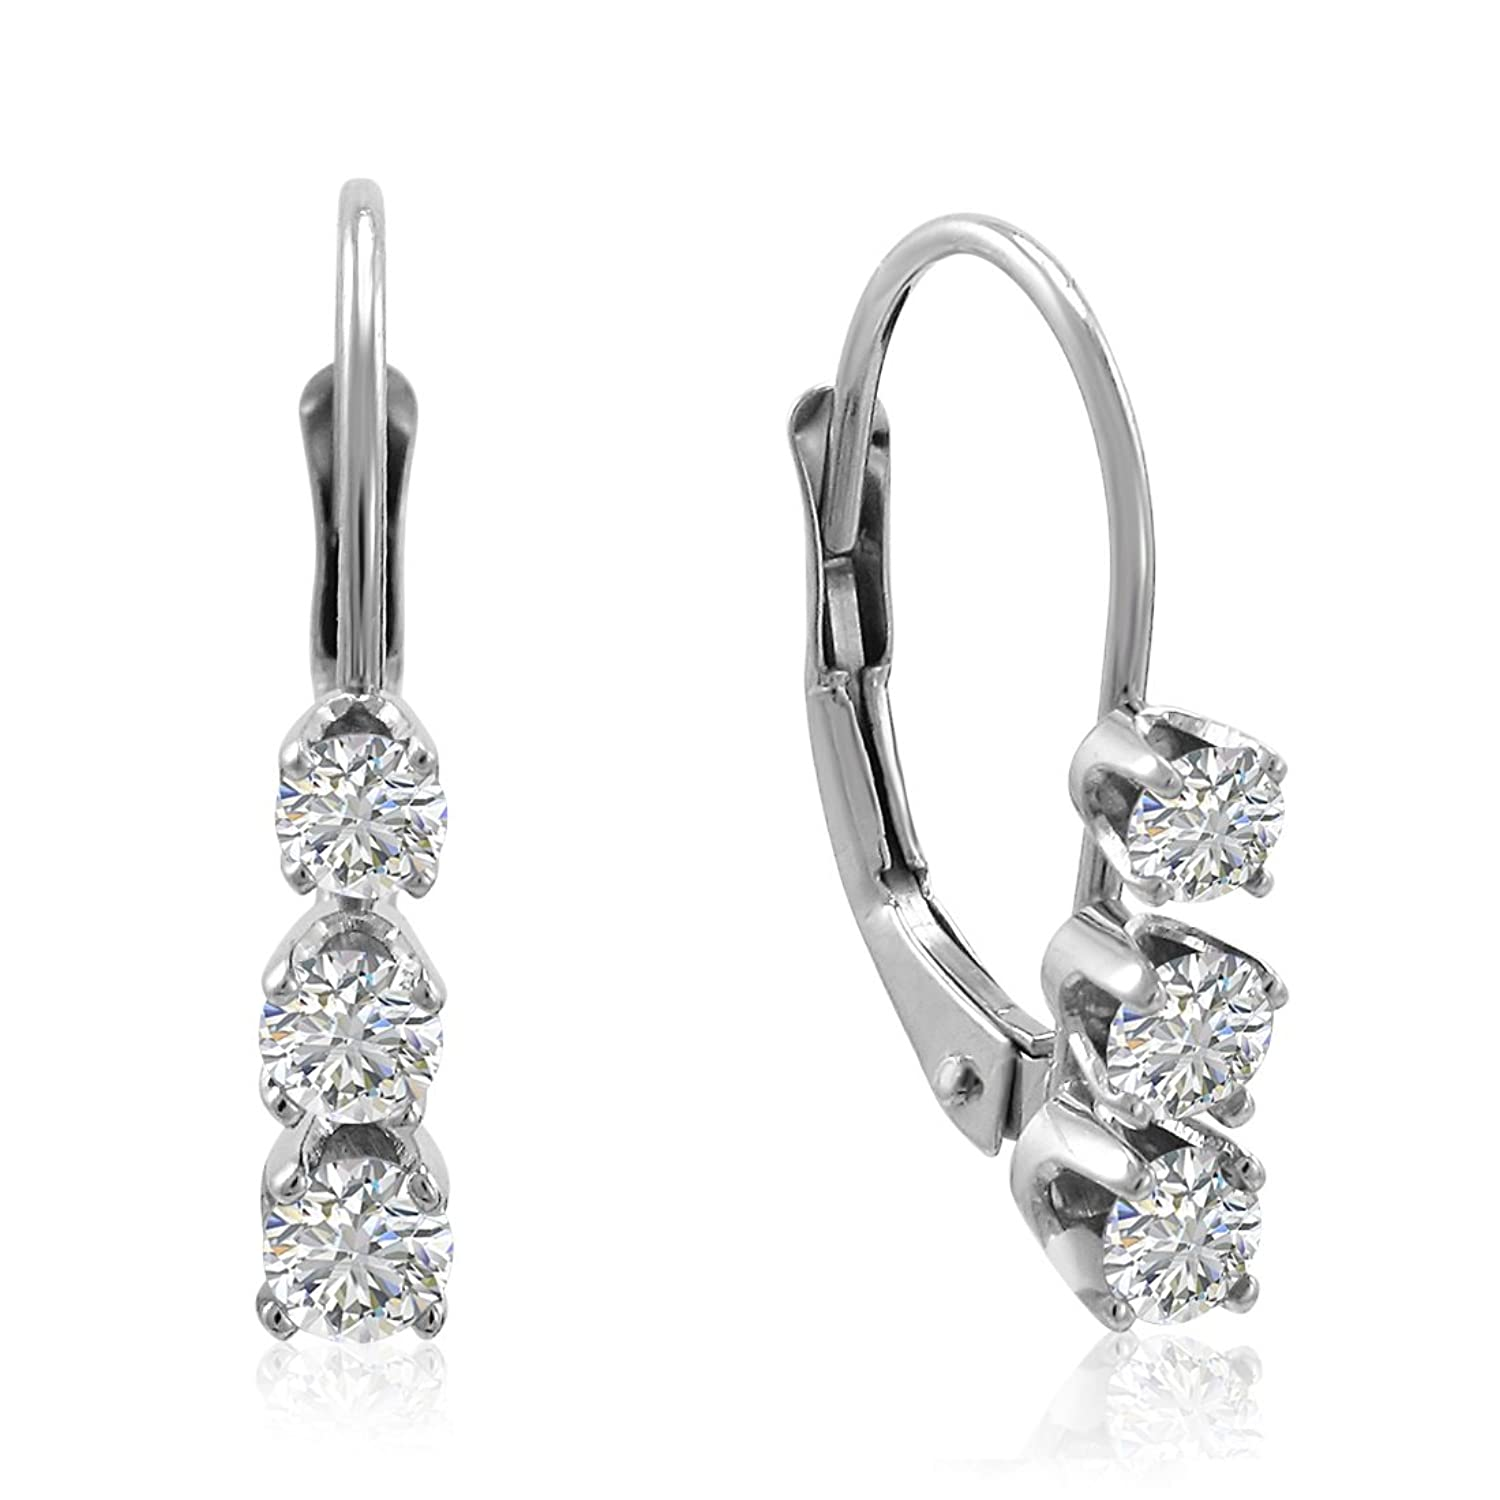 jewellery earrings context love in diamond wrapped p earings gold